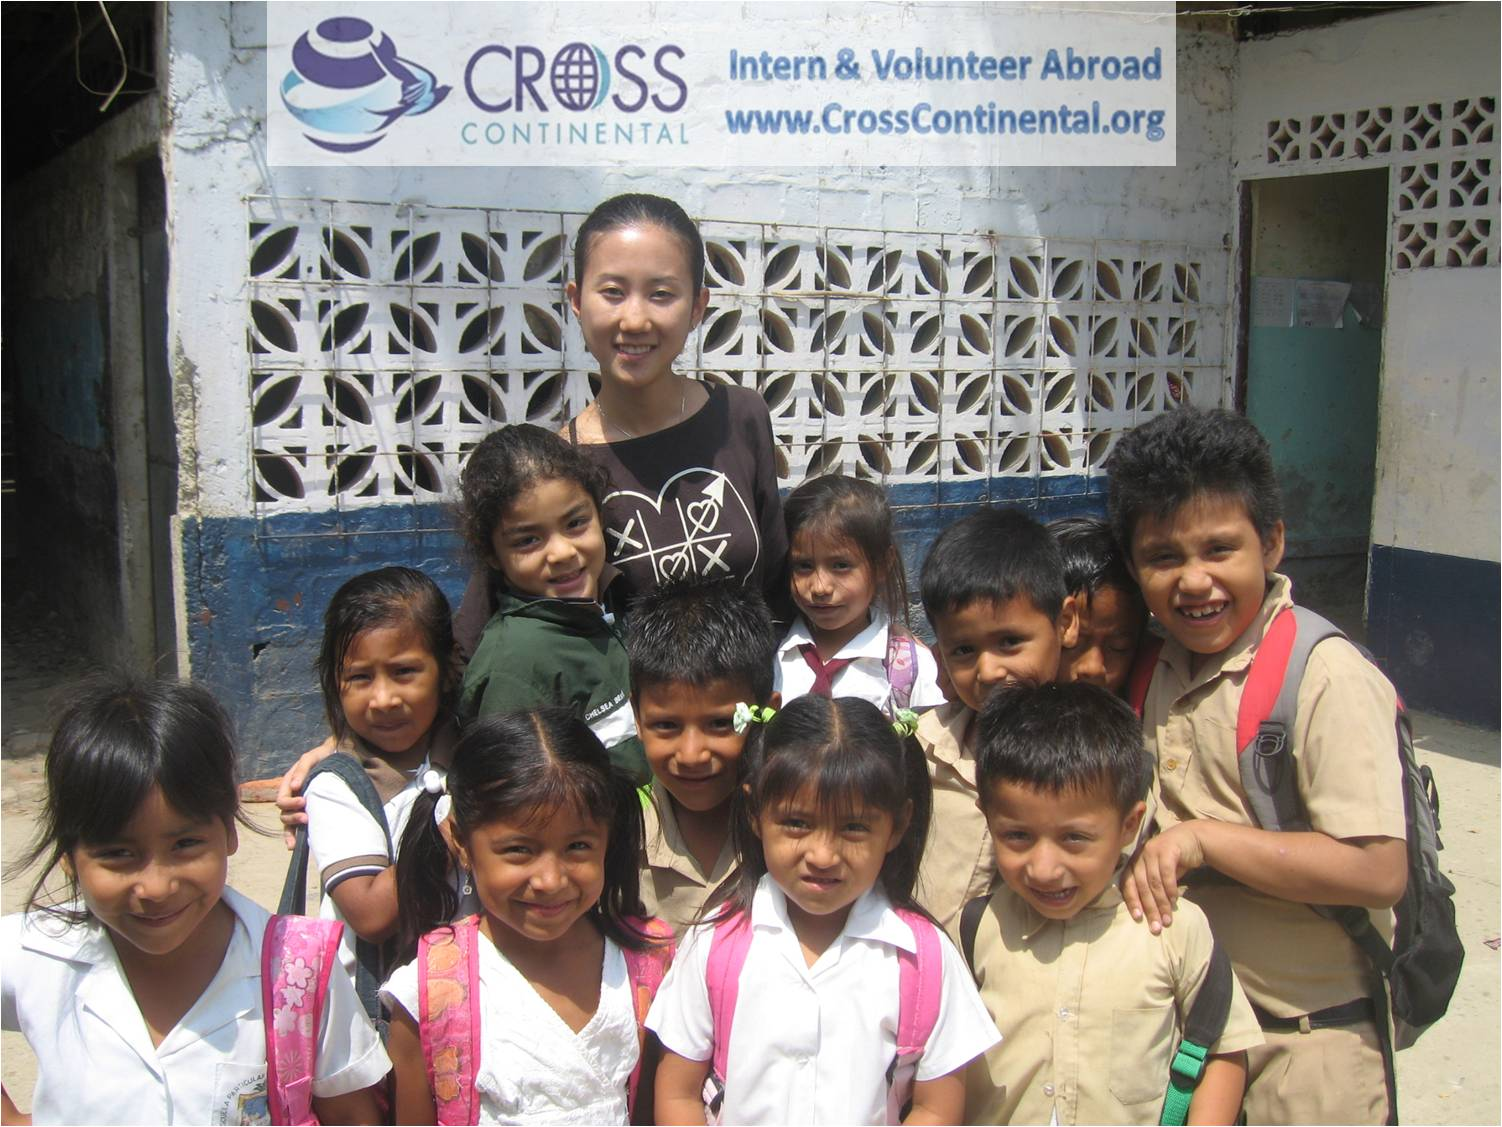 international internships and volunteer abroad-Latin America-Ecuador-112-teaching